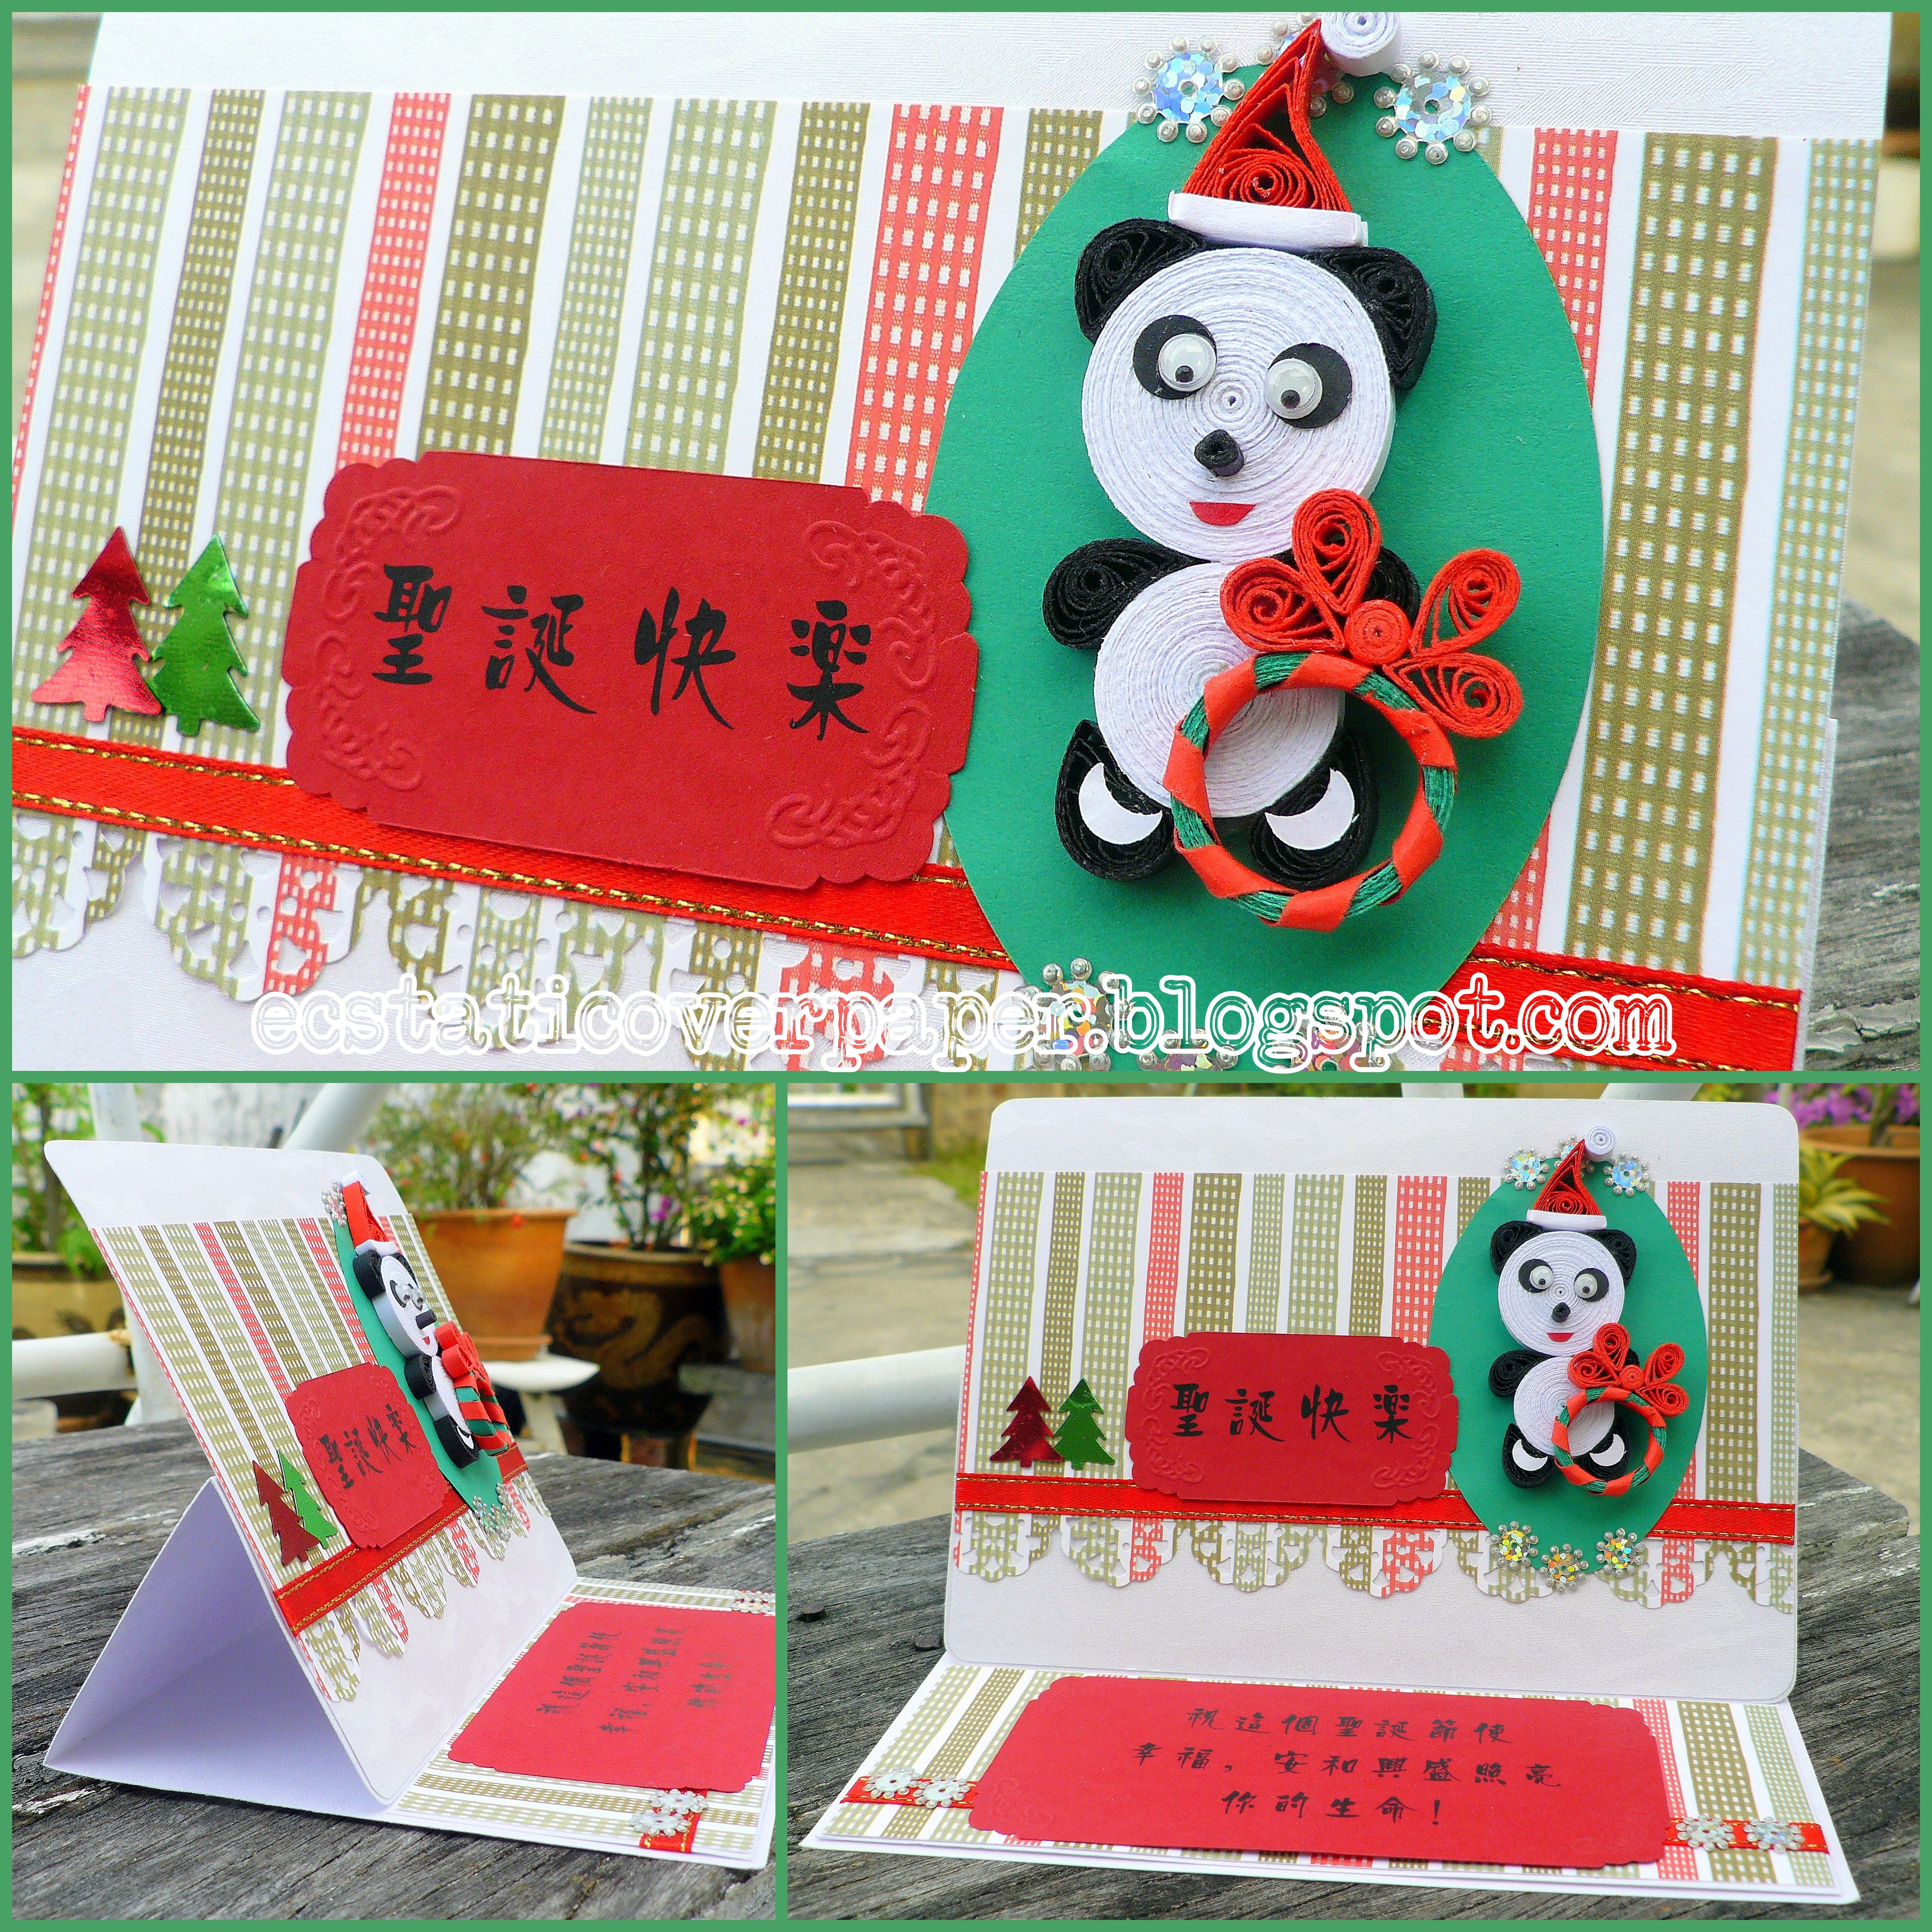 Another Panda Christmas Easel Card In Chinese Wishes The Life Of